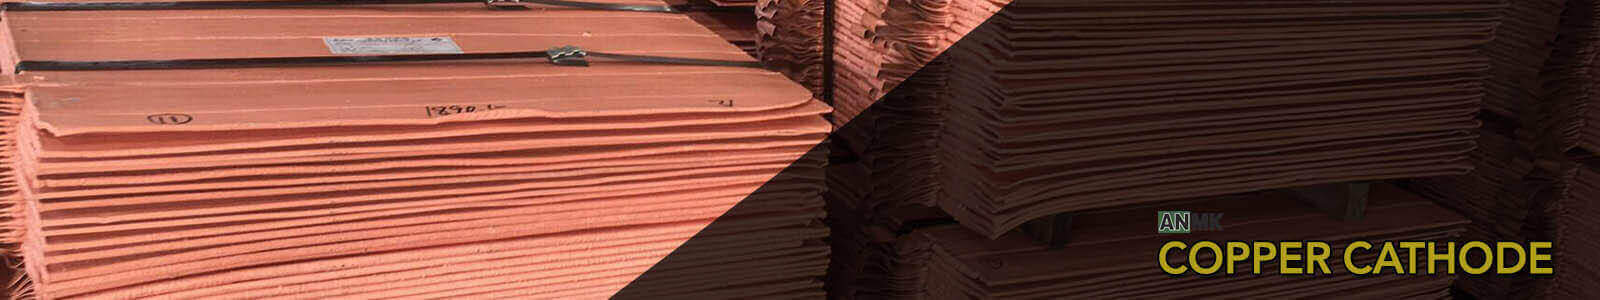 copper cathode - anmk steel